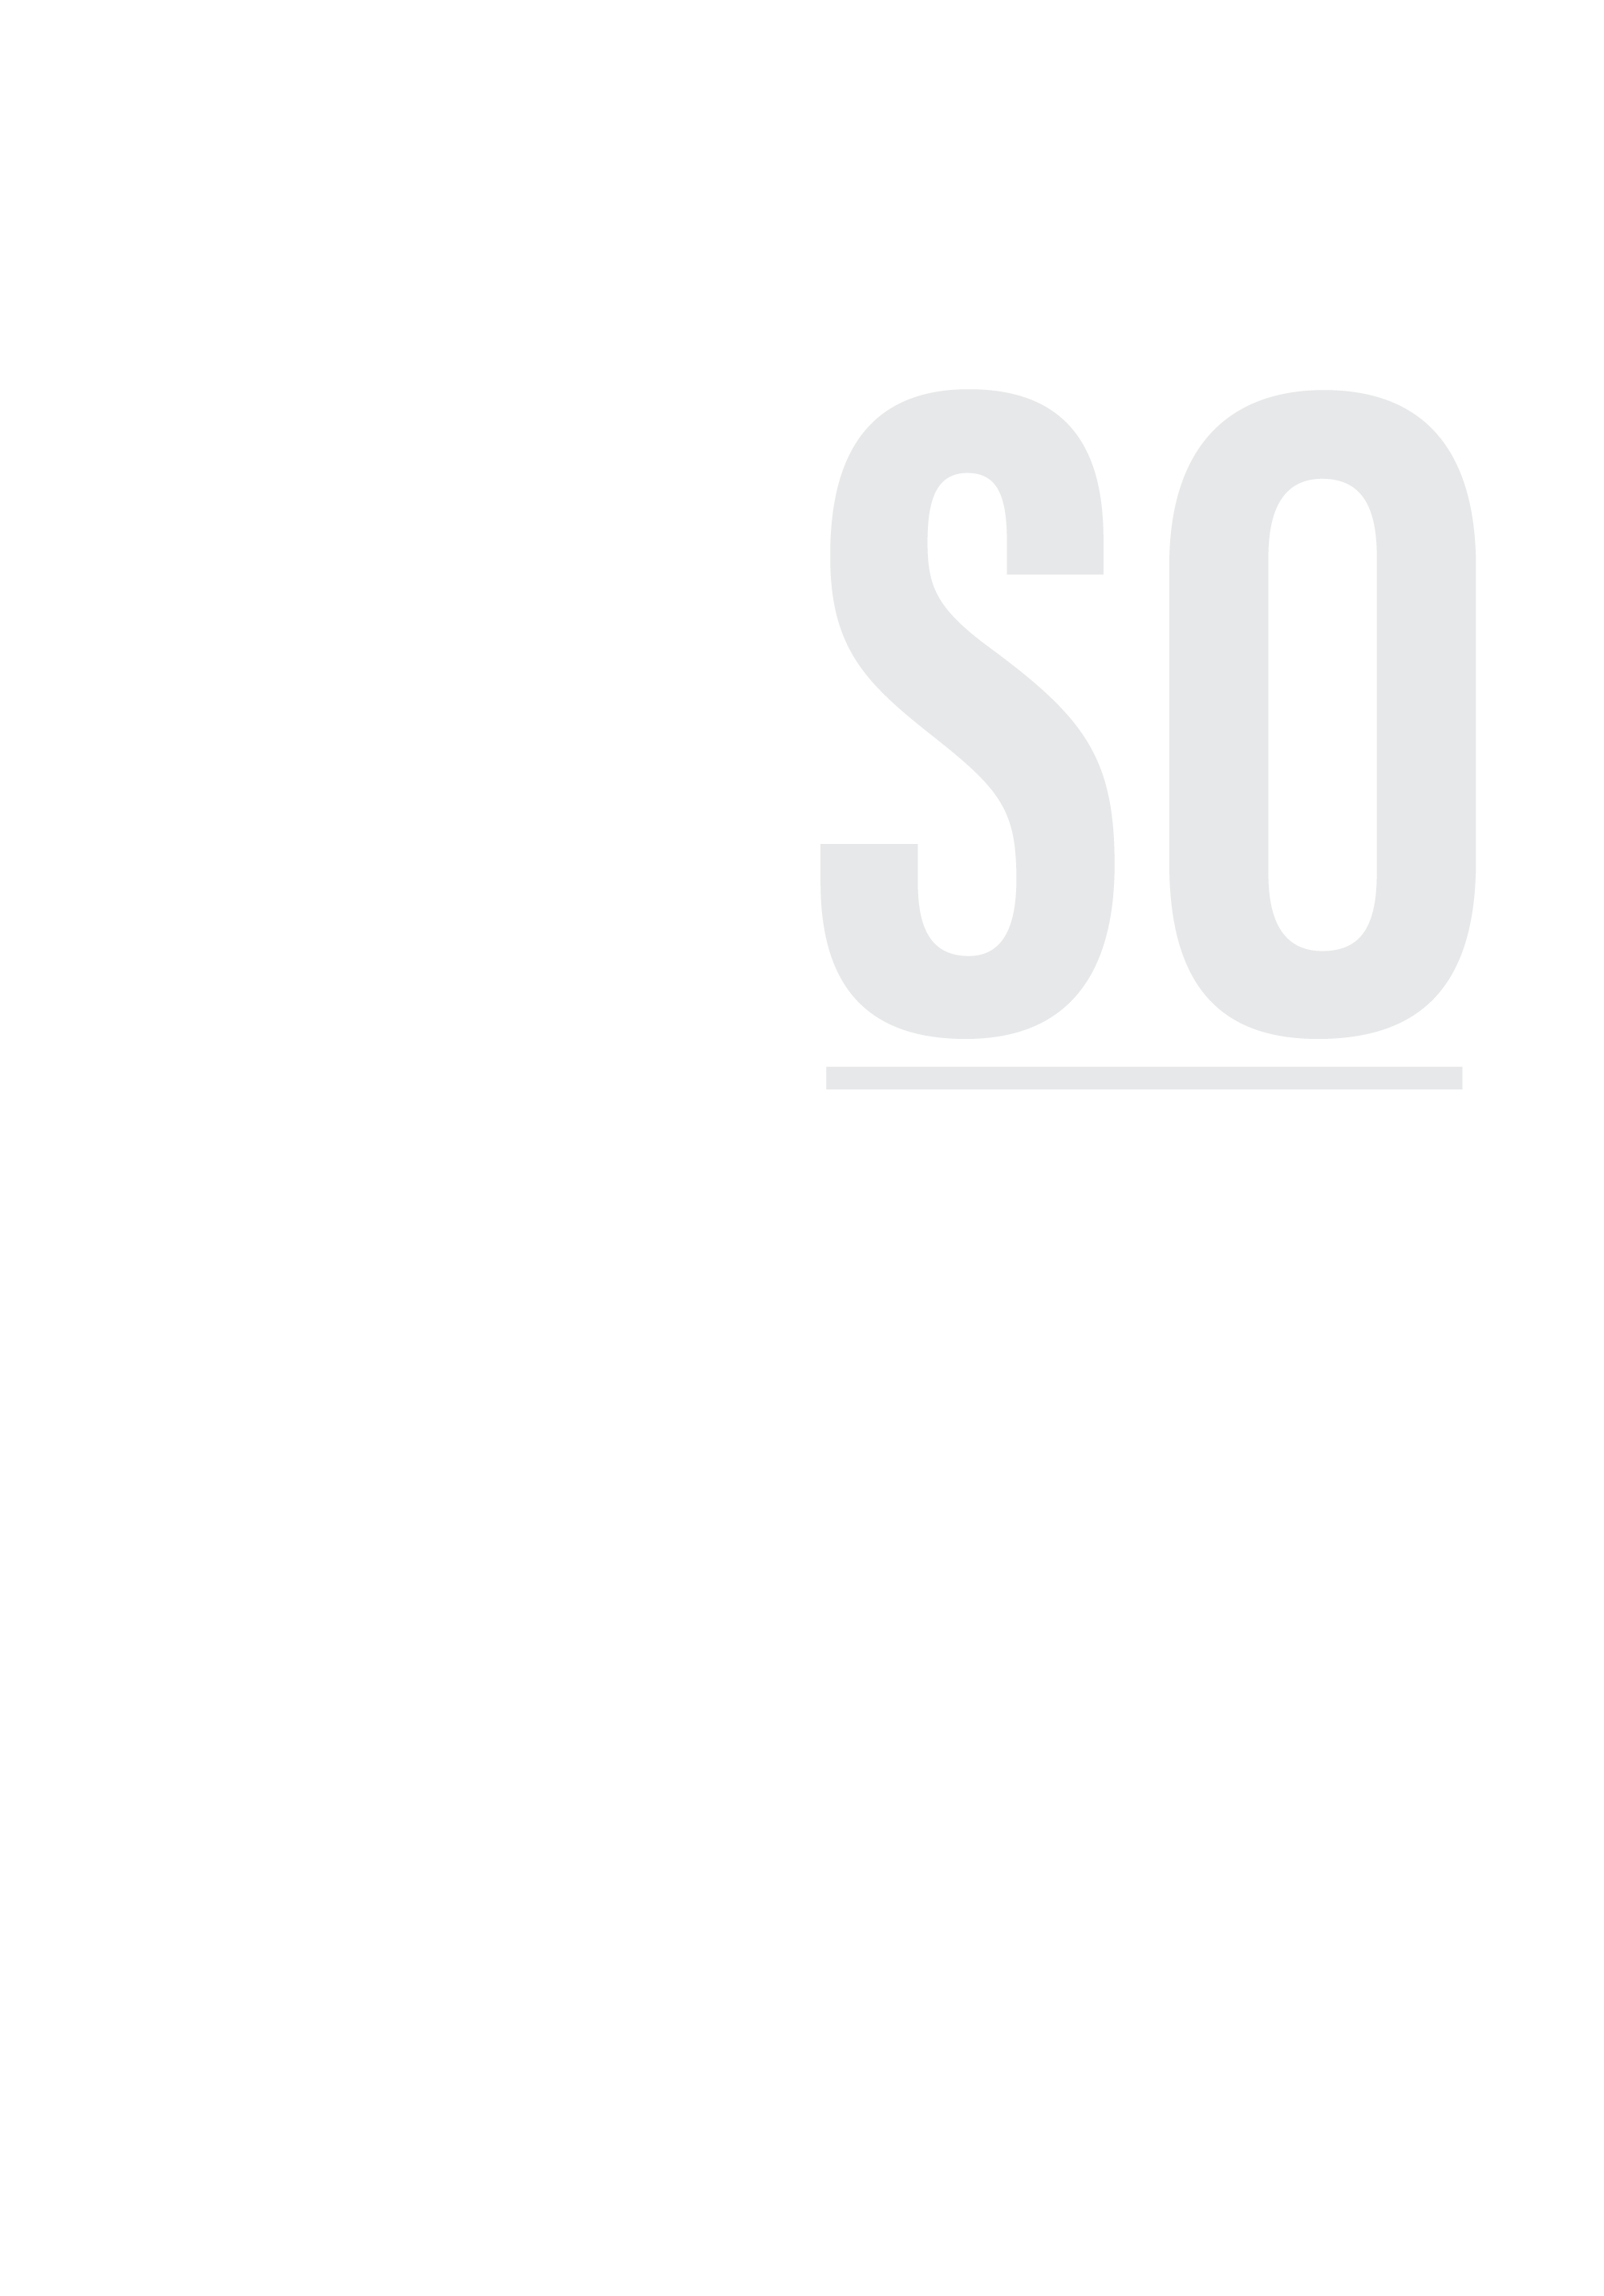 Be So Bold Total Dish Branding and Messaging